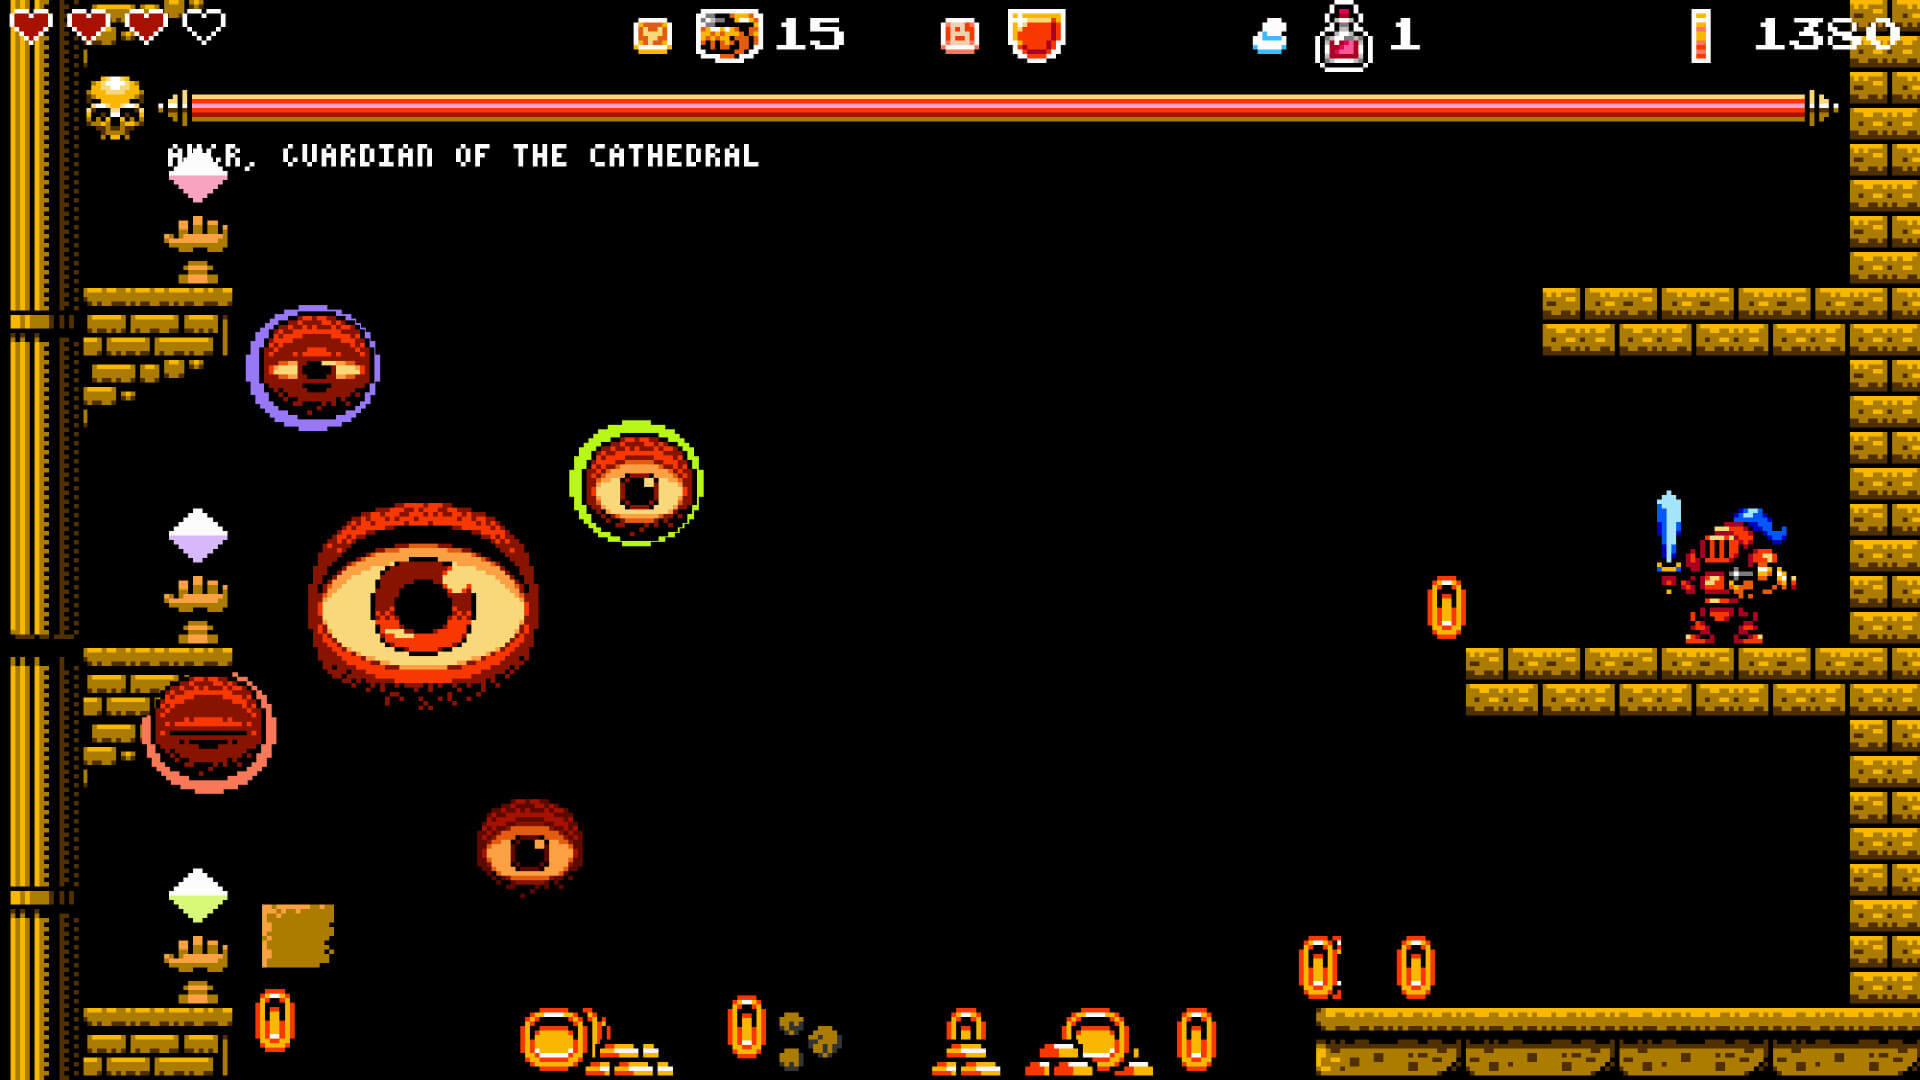 Cathedral Free PC Download